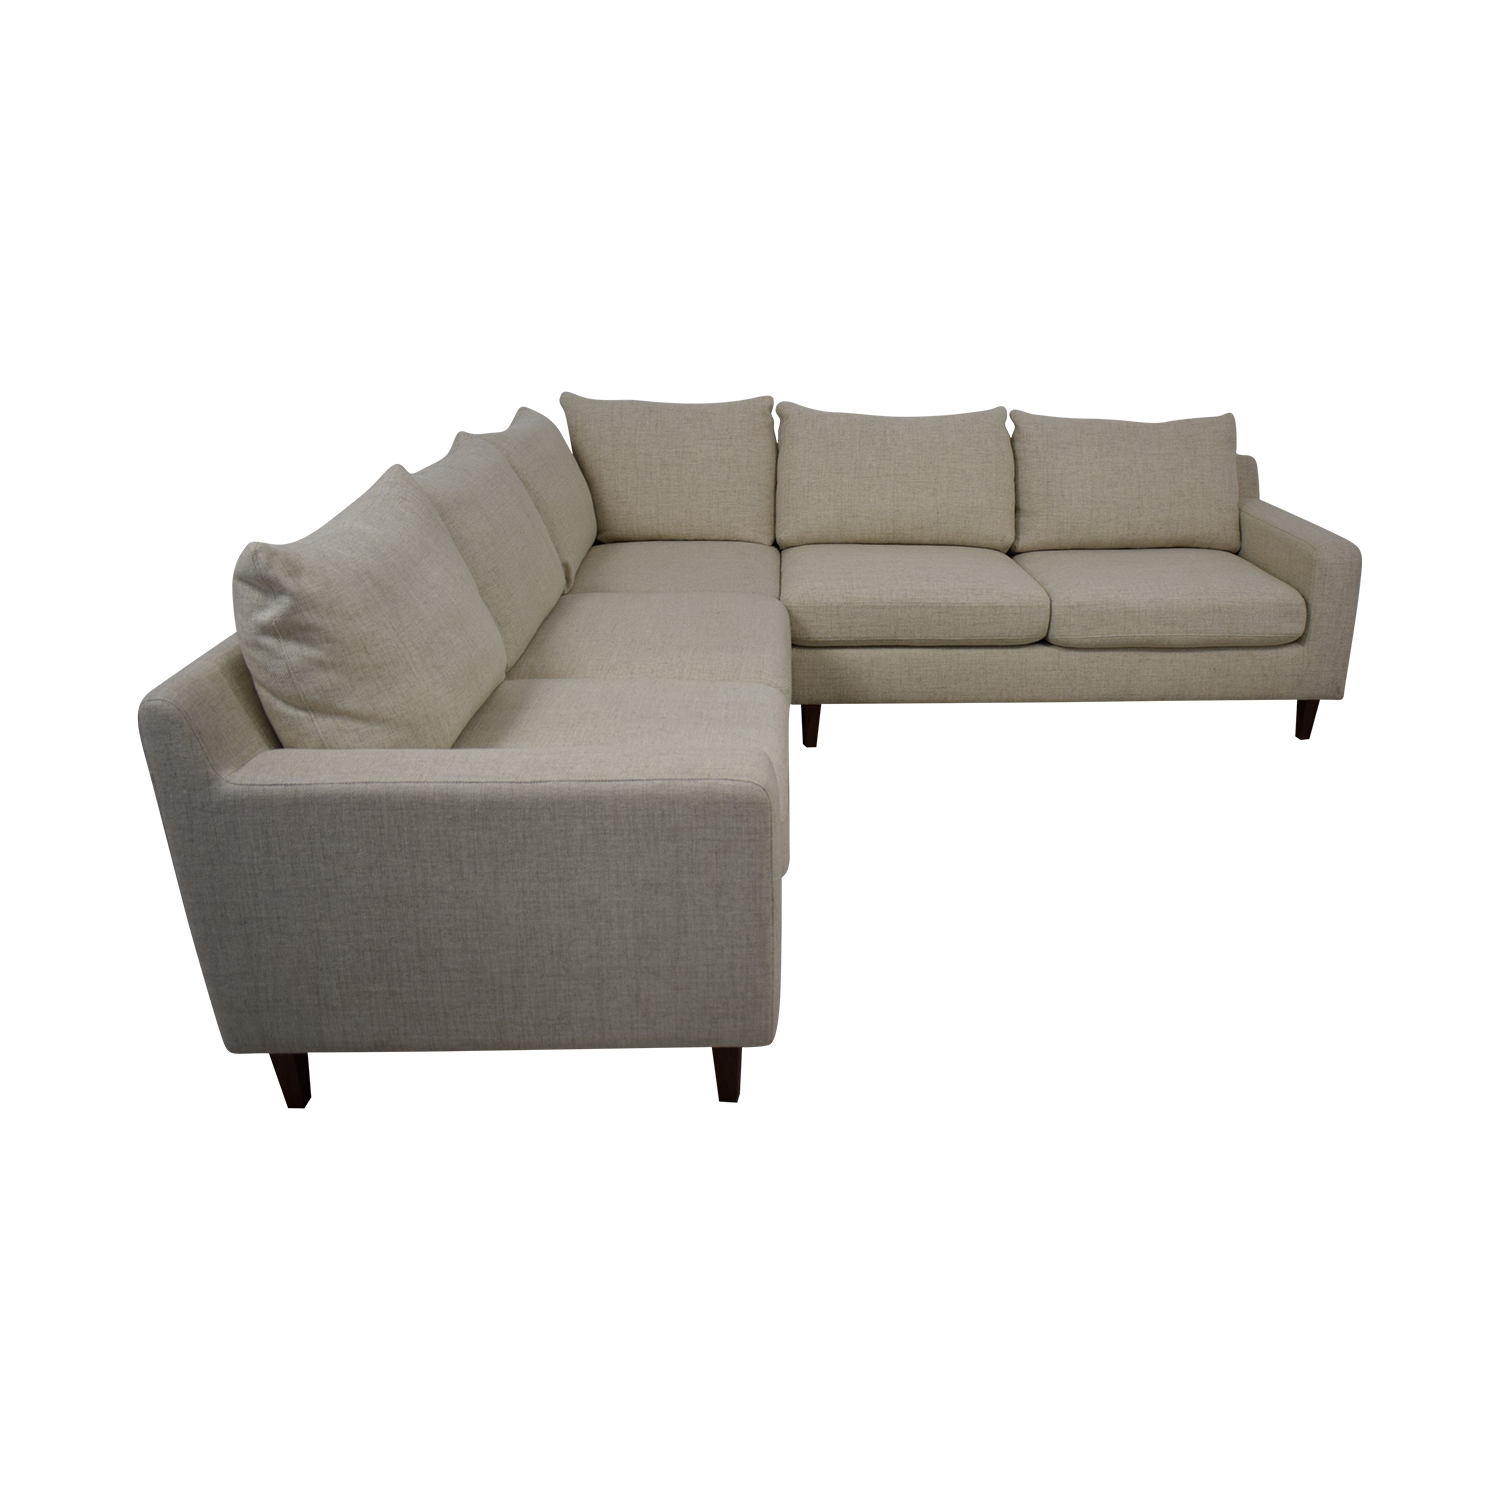 Interior Define Sloan L-Shaped Sectional Sofa nj